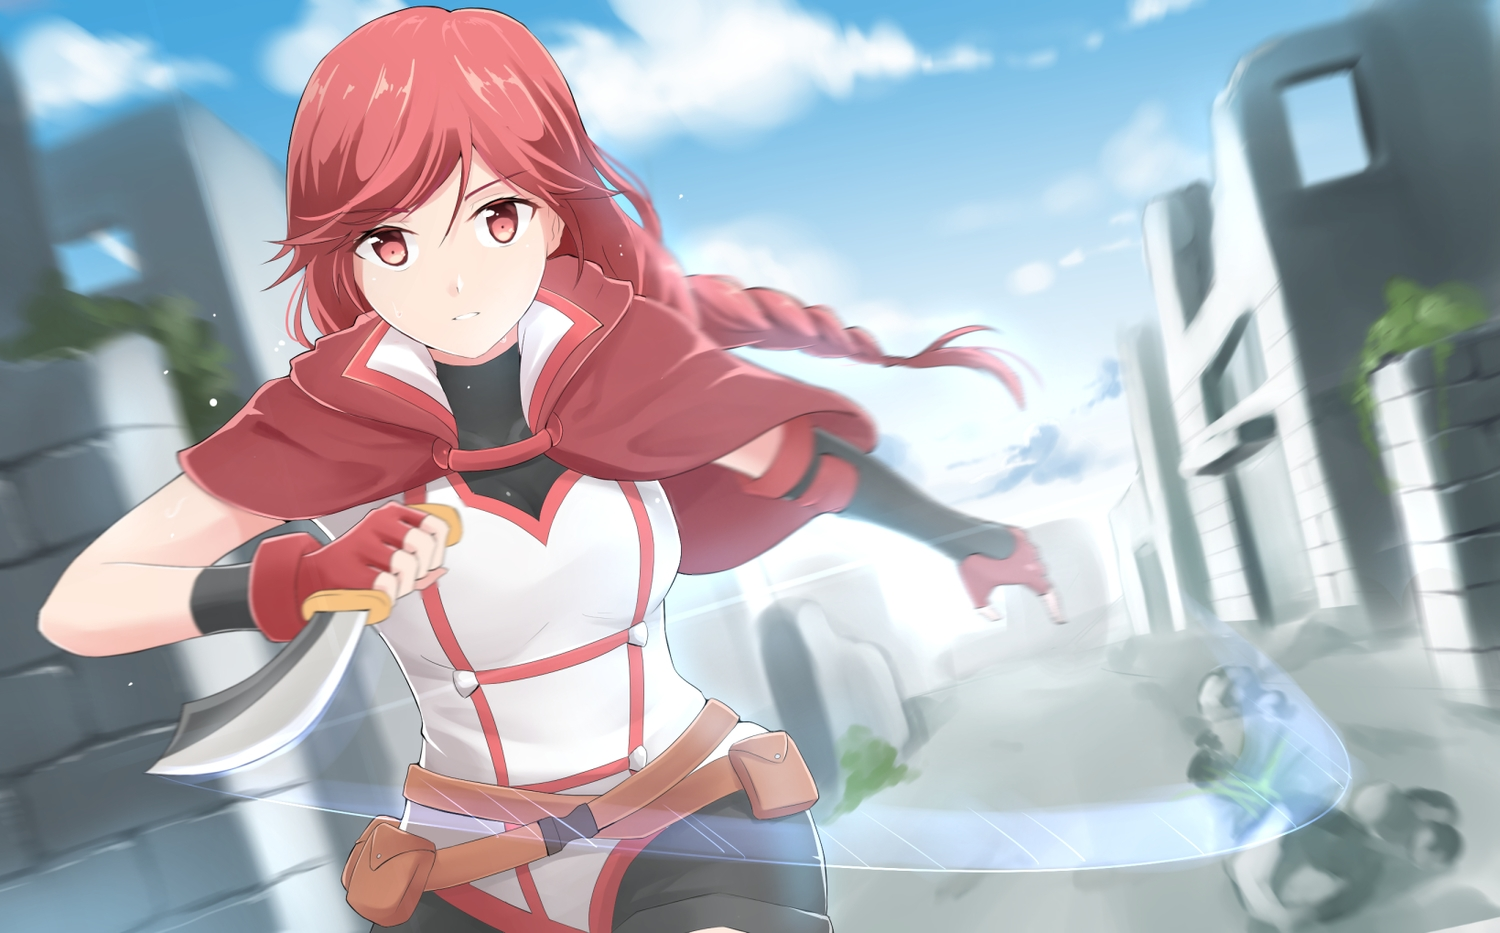 braids cape clouds elbow_gloves gloves hai_to_gensou_no_grimgar knife long_hair ponytail red_eyes red_hair shorts sky ucukrtz weapon yume_(grimgar)